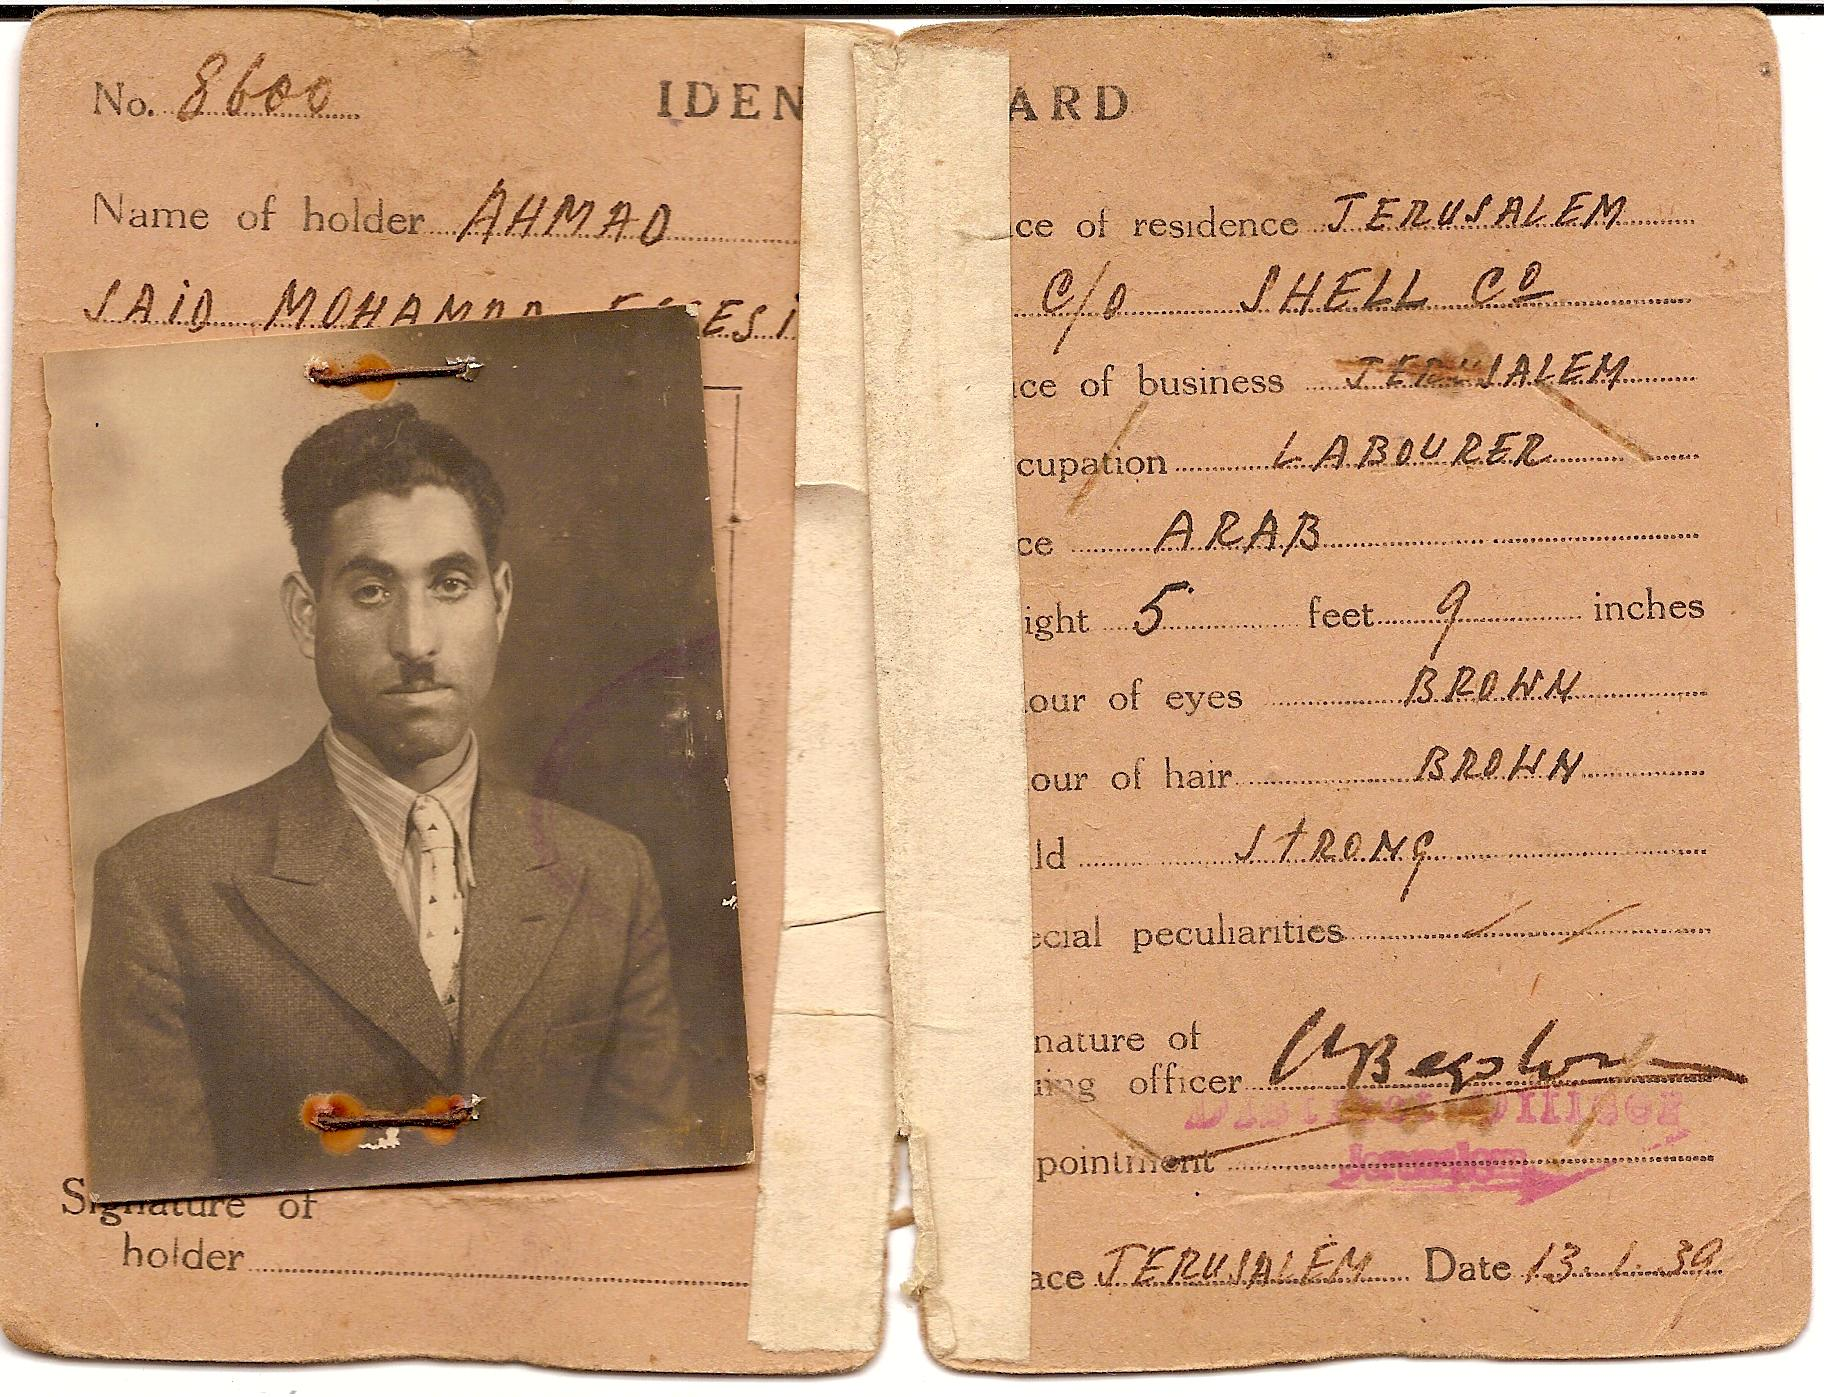 al-Maliha - المالحه : Identity Card Dated  13/1/1930-B